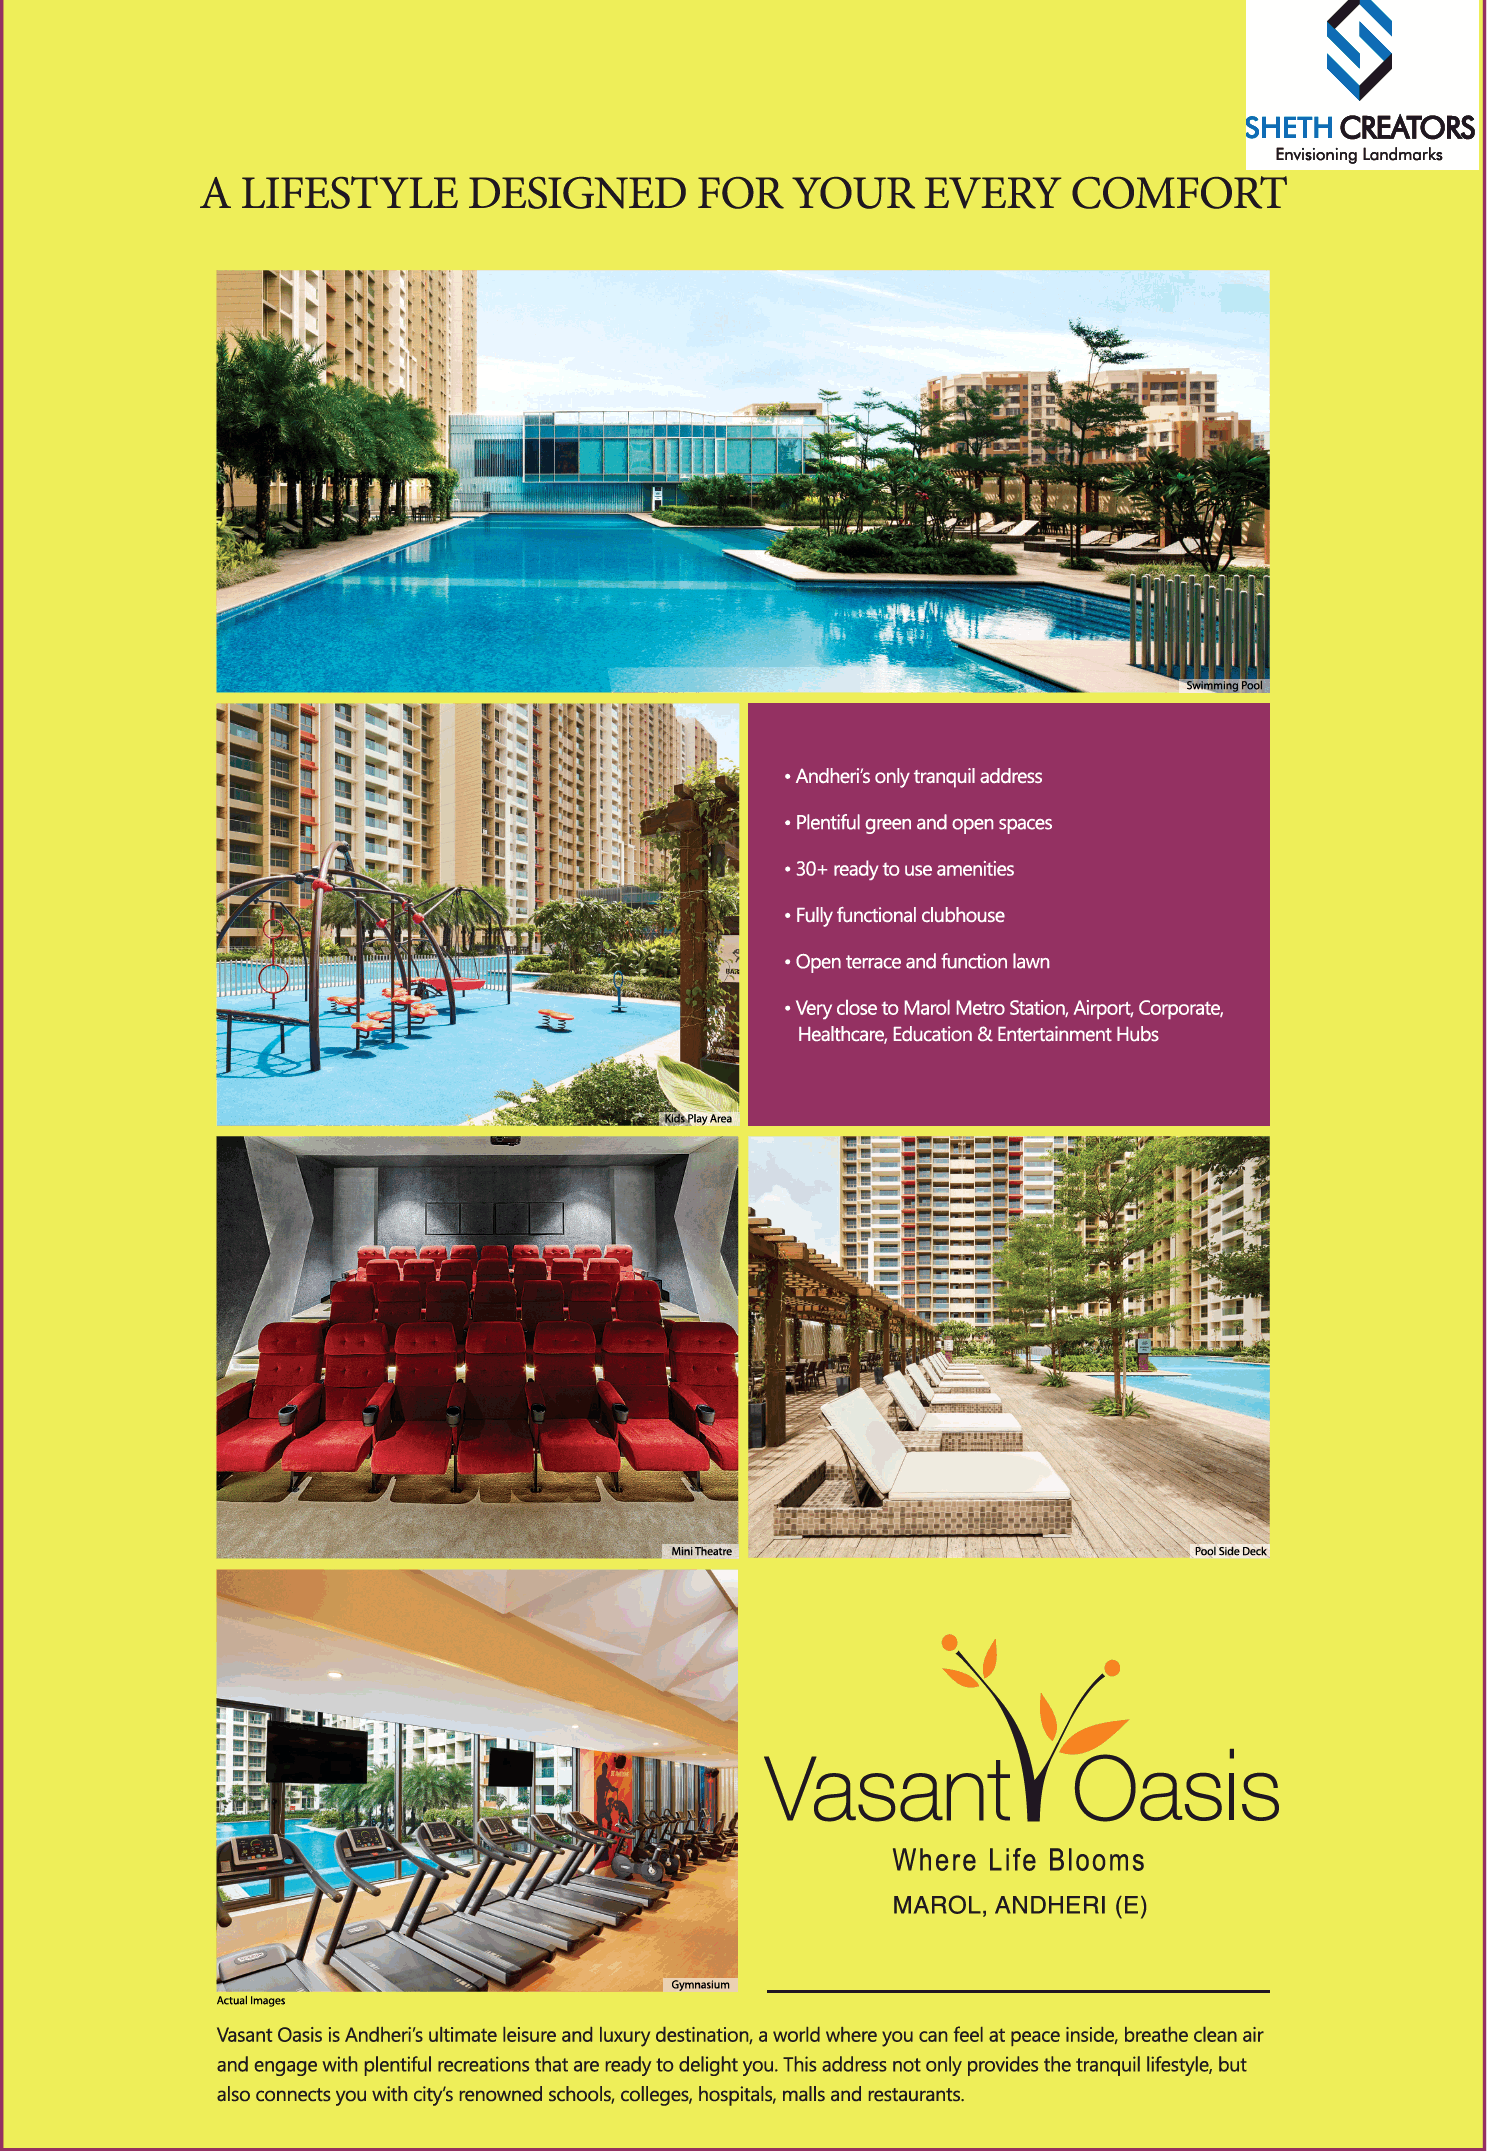 A lifestyle designed for your every comfort at Sheth Vasant Oasis in Mumbai